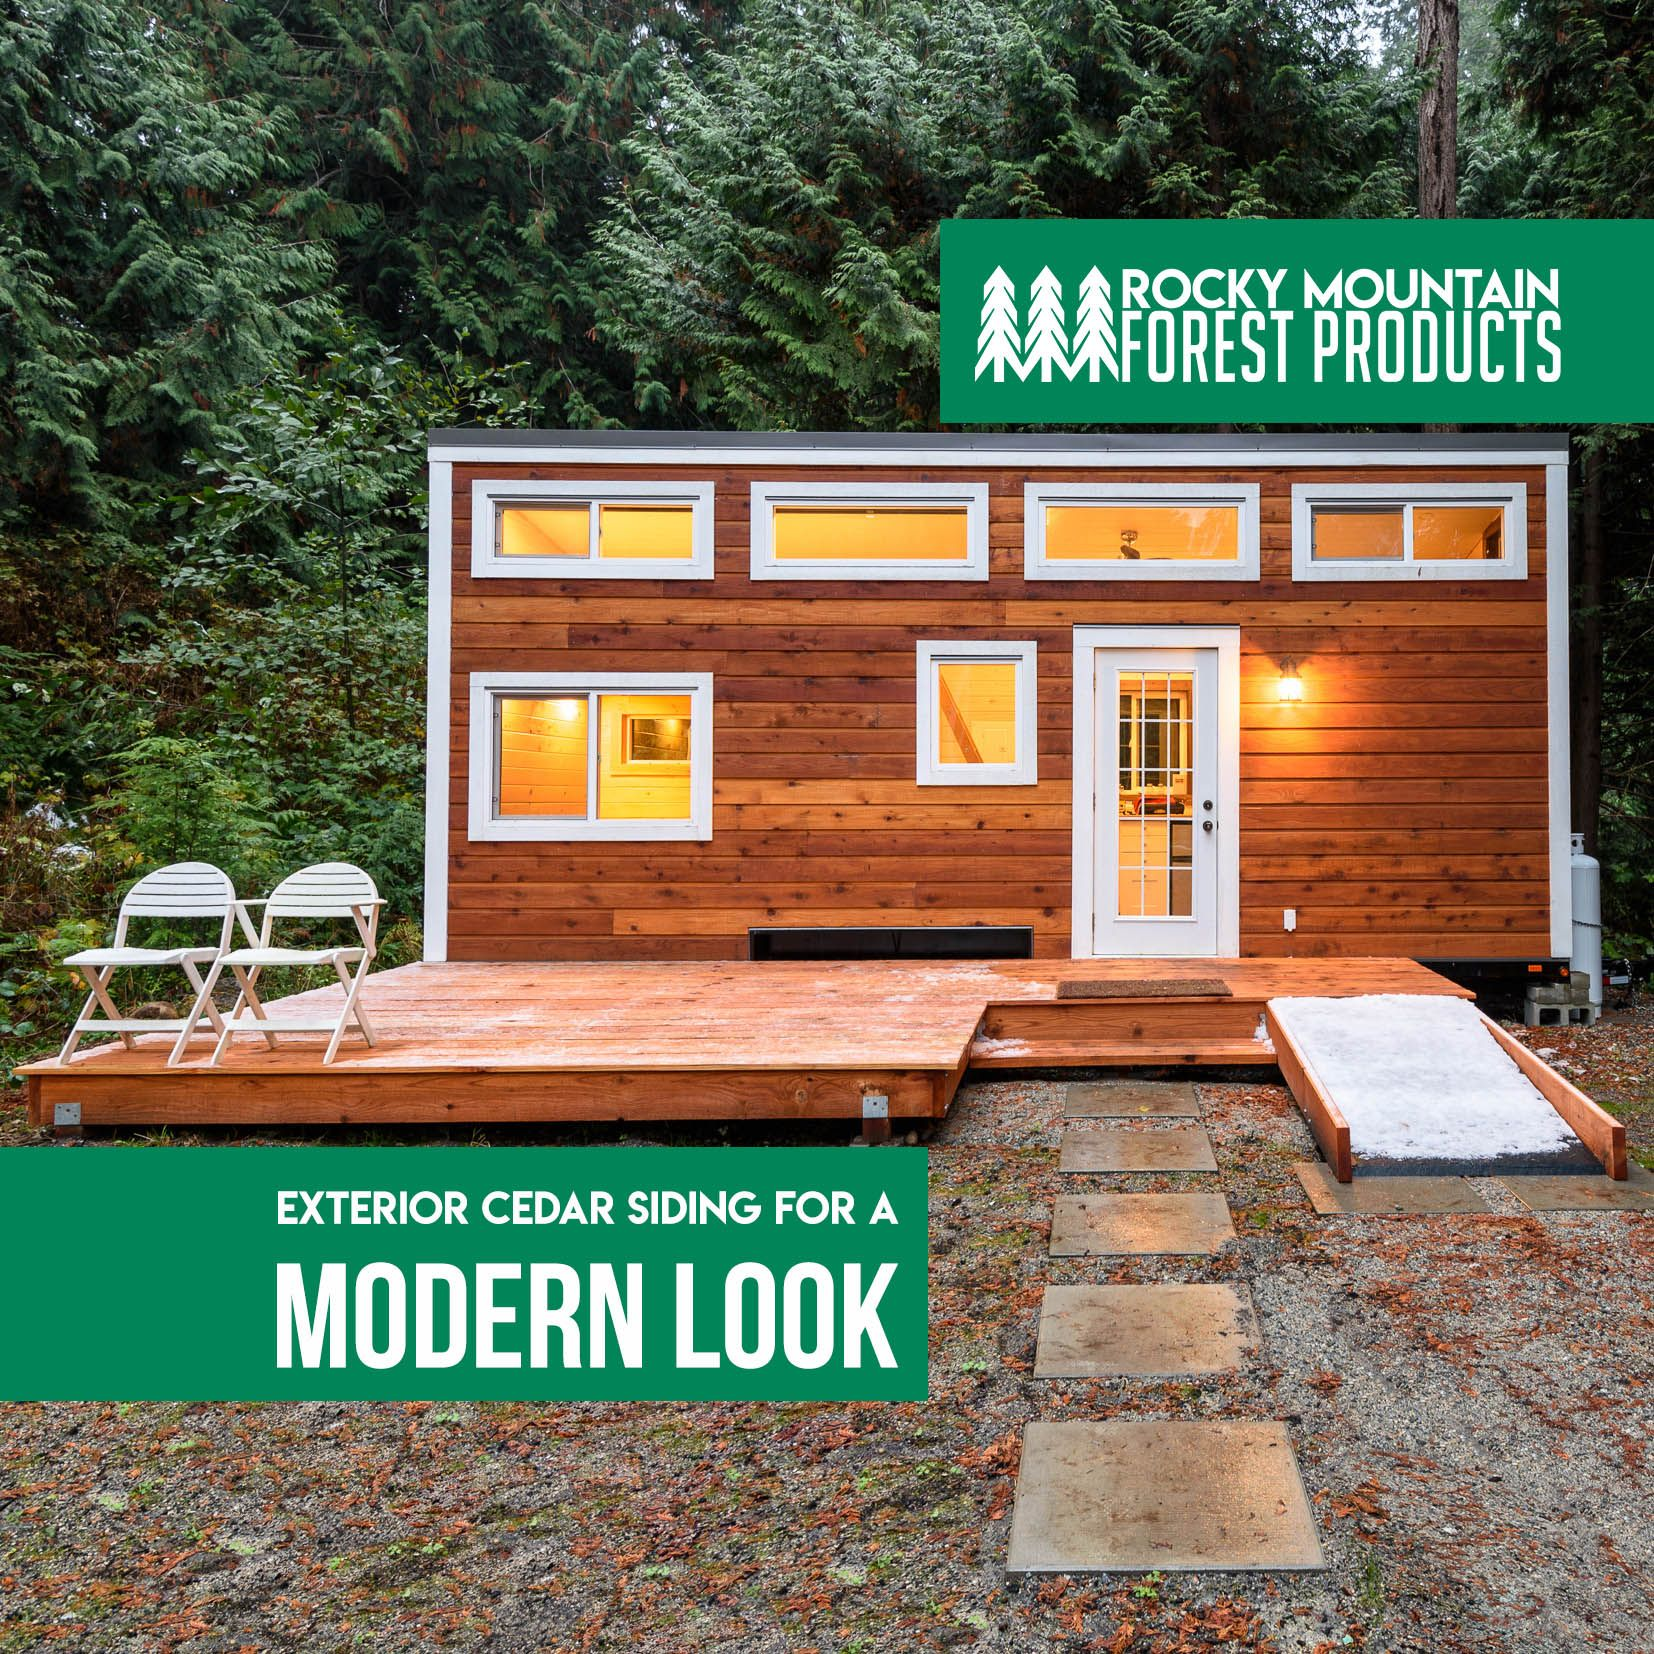 Exterior Siding Can Make Your Home Look Modern And Contemporary Cedar Siding Exterior Siding Siding